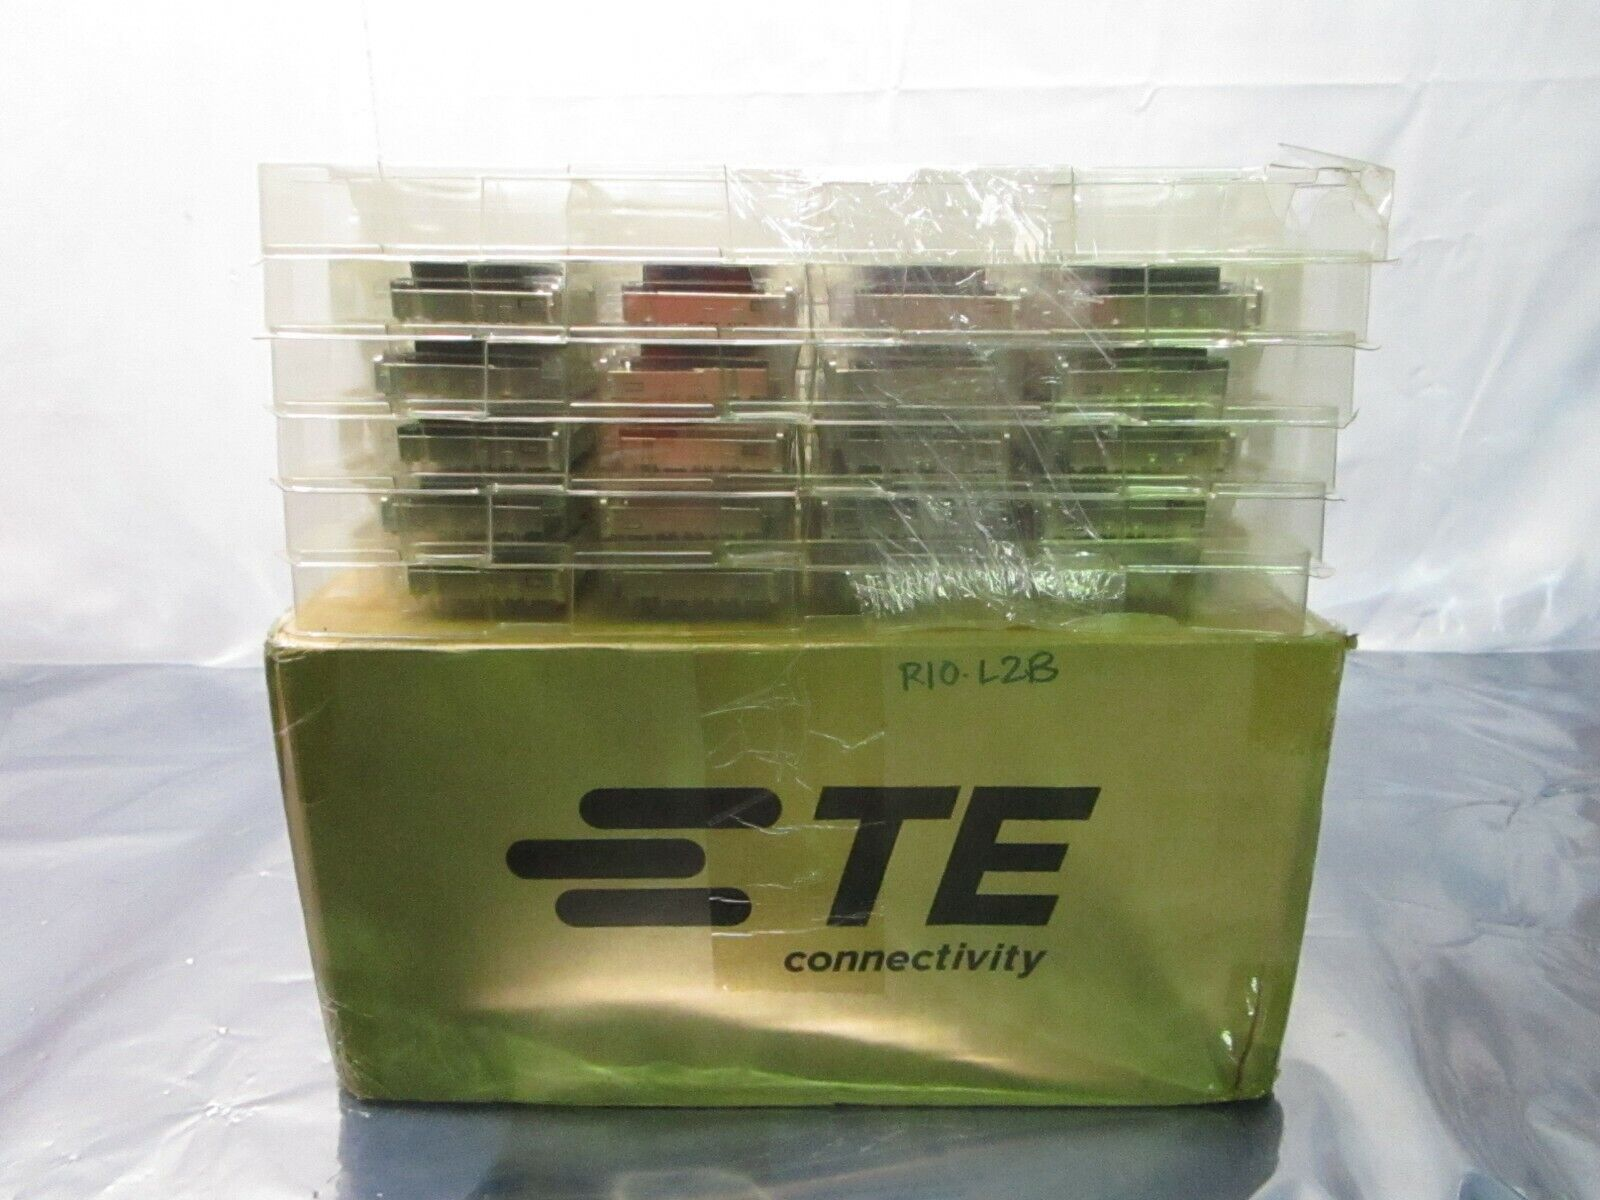 1 Lot of 40 TE connectivity AMP Brand 2170551-1 1X6 CAGE ASSEMBLY, 102316